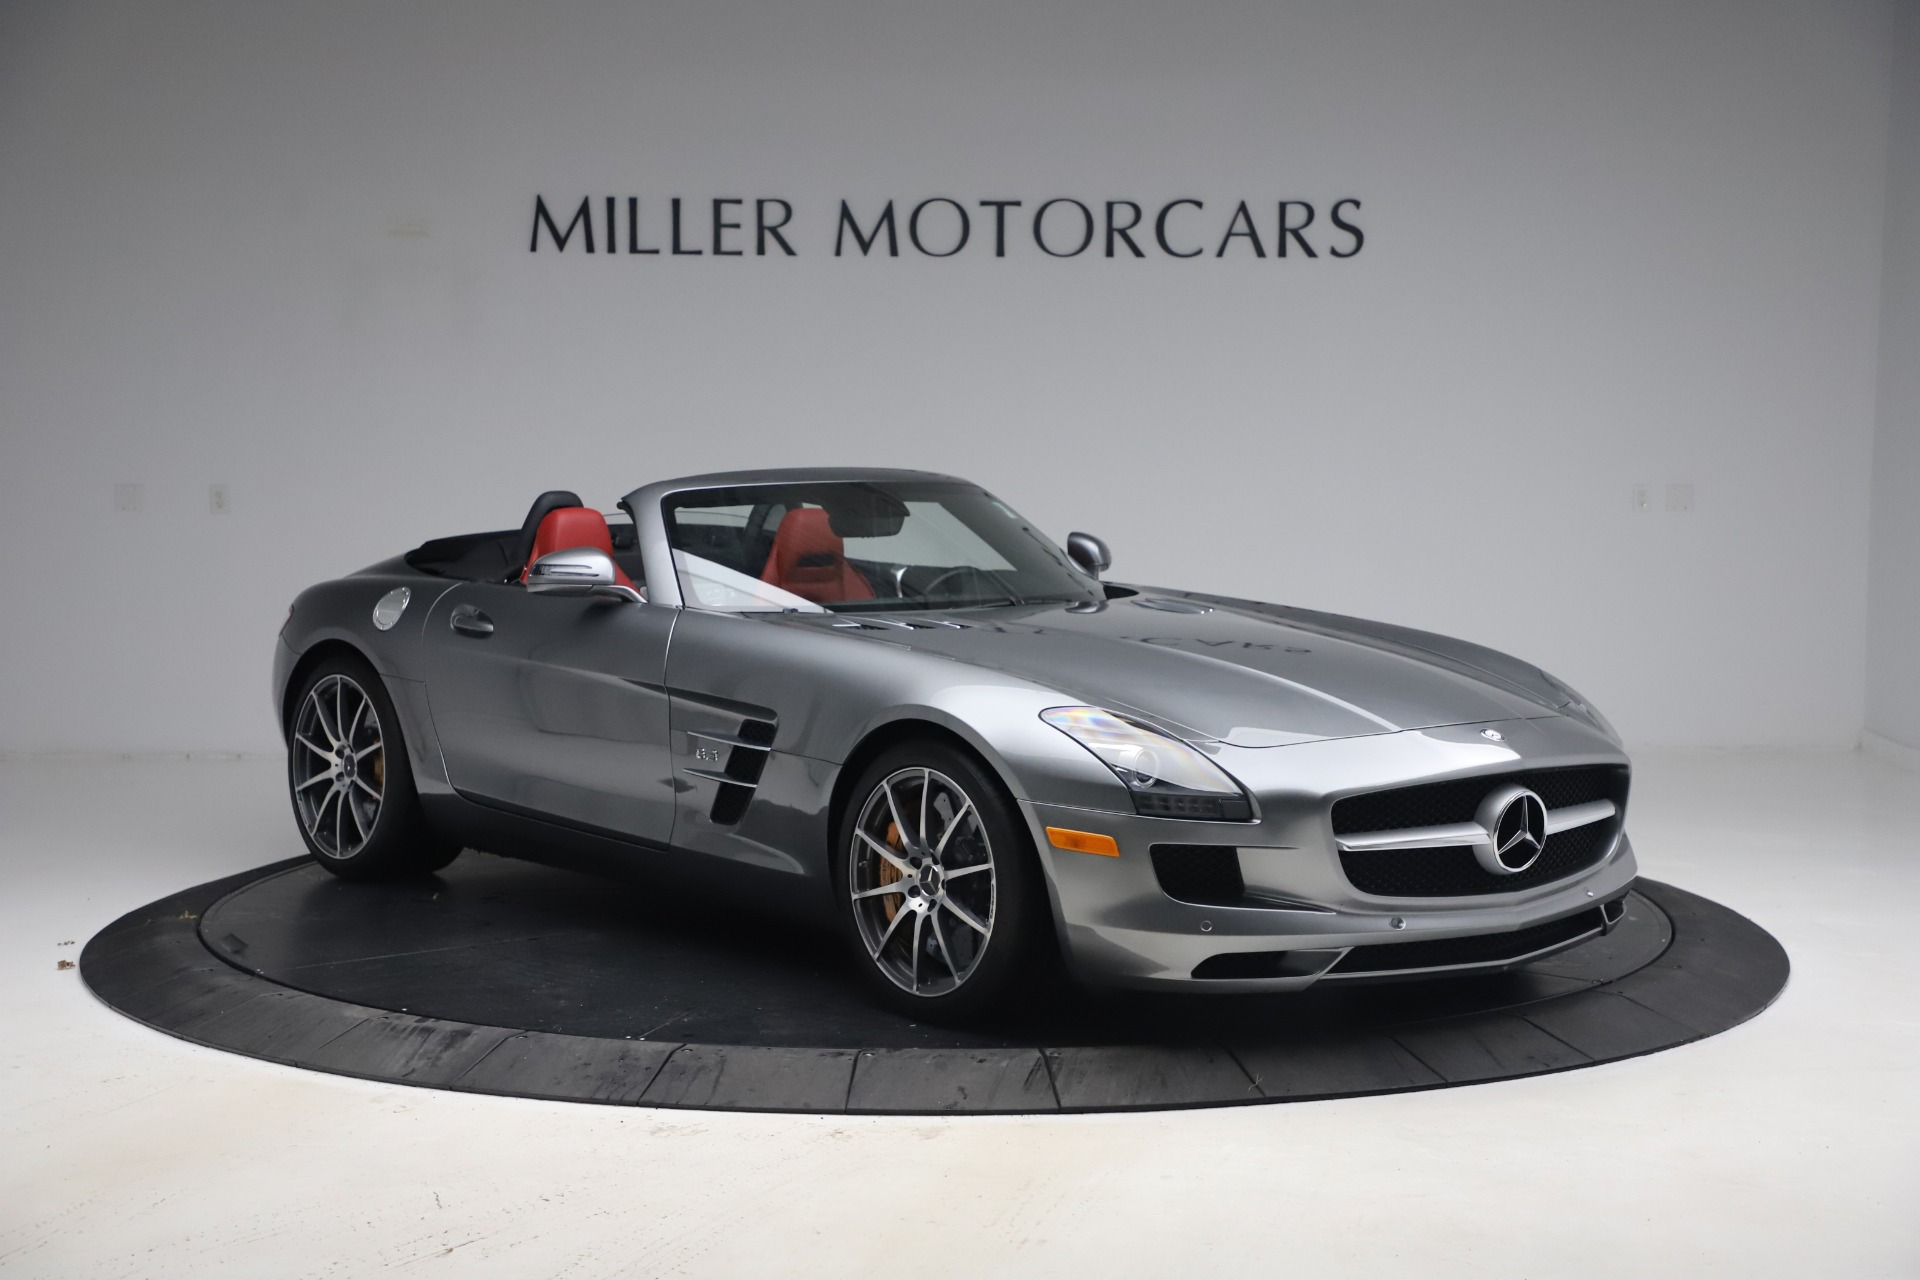 Used 2012 Mercedes-Benz SLS AMG  For Sale In Westport, CT 3189_p16